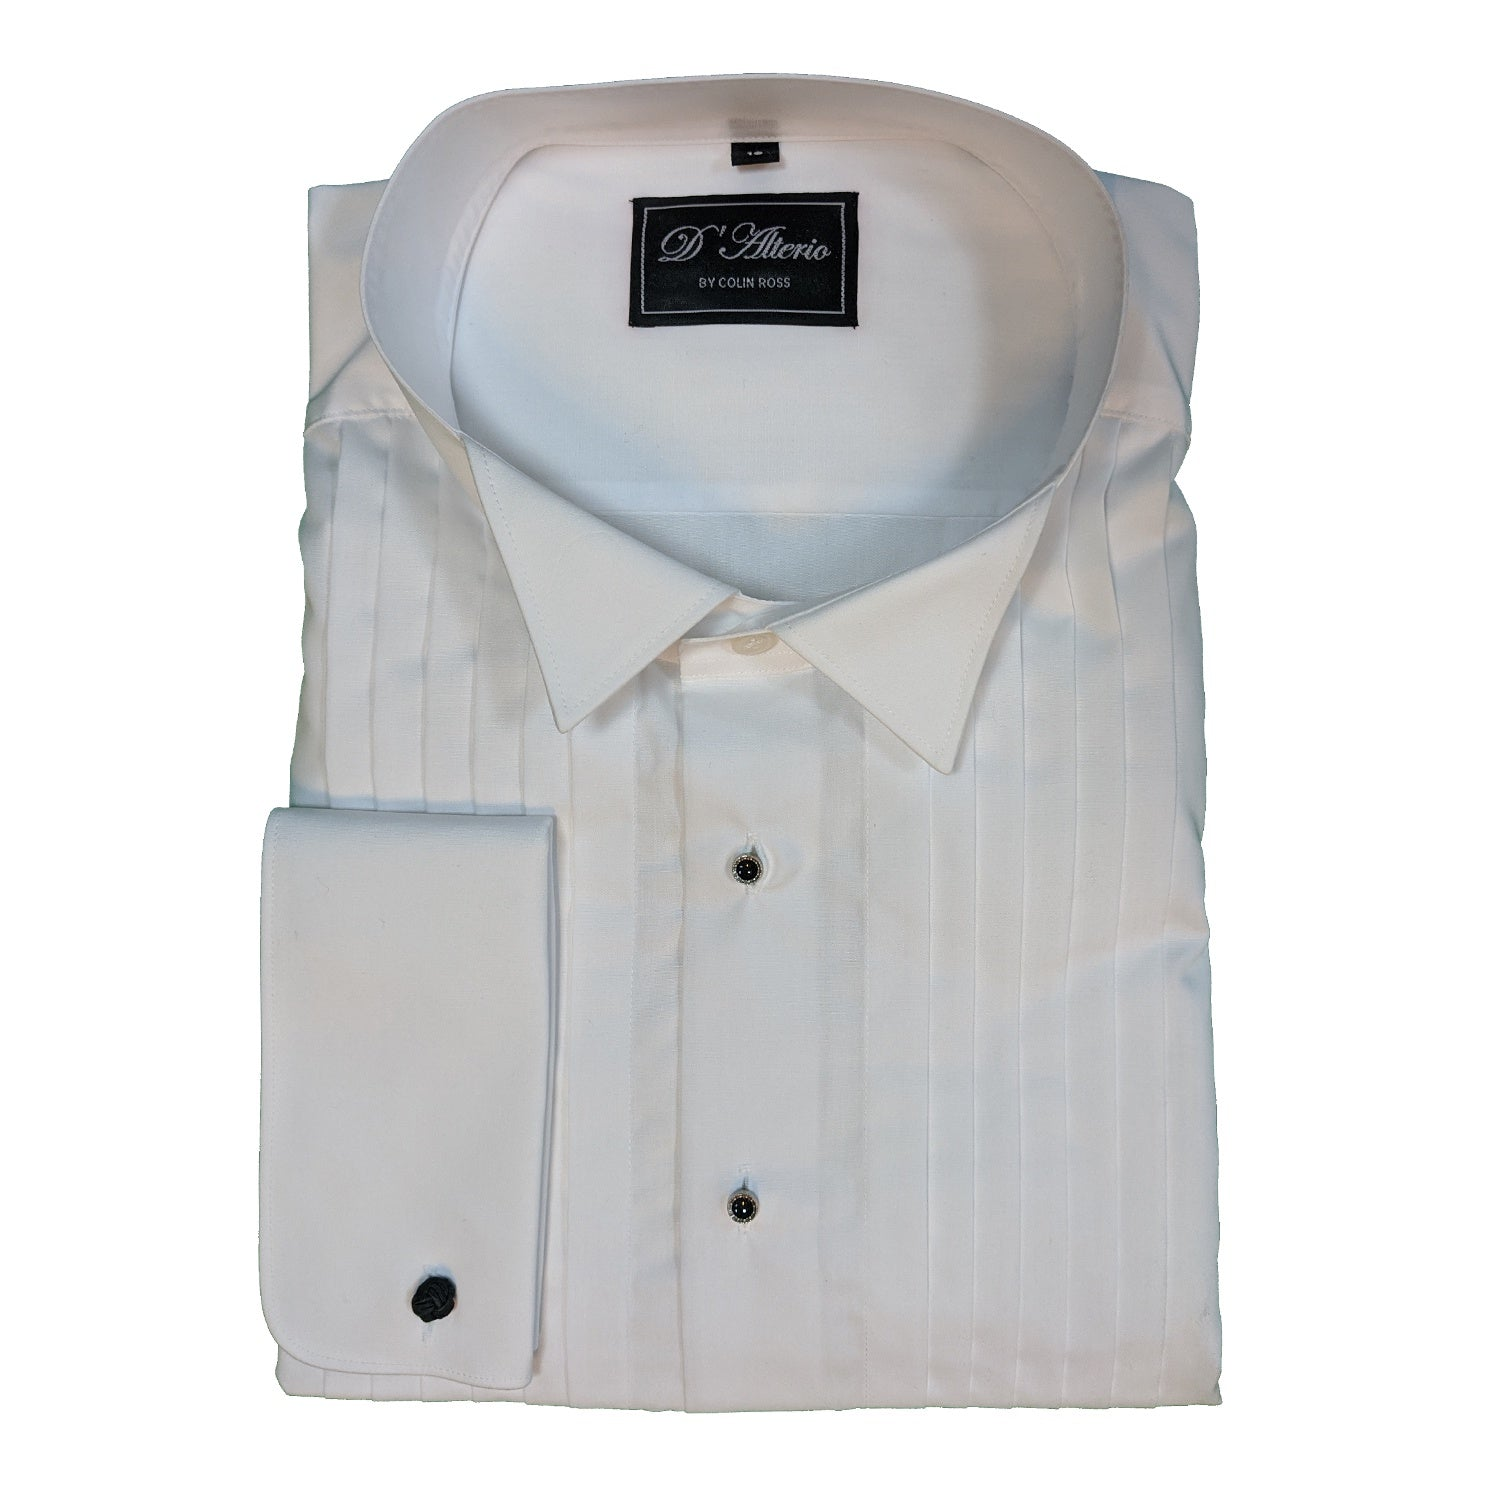 D'Alterio Wing Collar Dress Shirt - 21839 - White 1